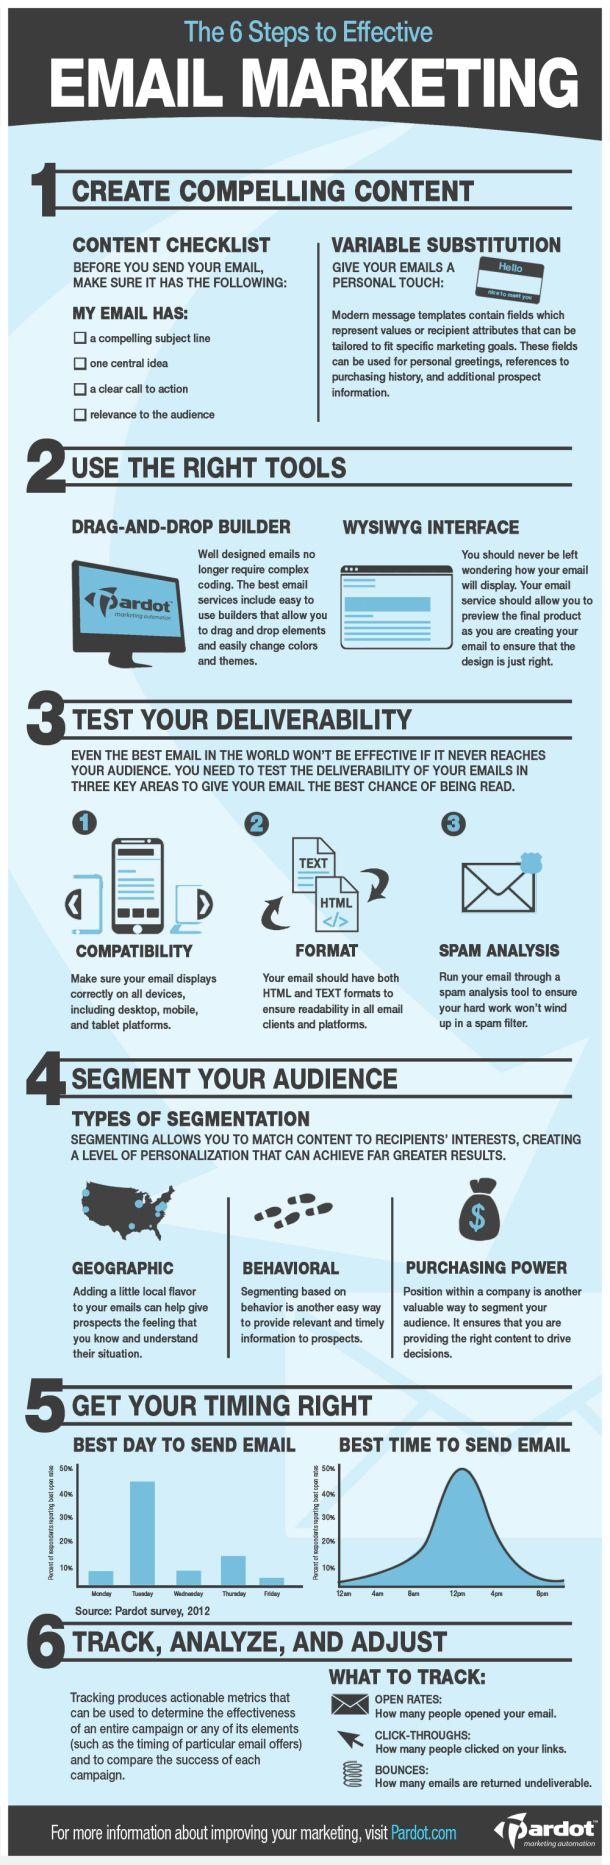 [Infographie] 6 étapes pour réussir une campagne emailing || The 6 Steps To Effective Email Marketing [INFOGRAPHIC] #digital #marketing